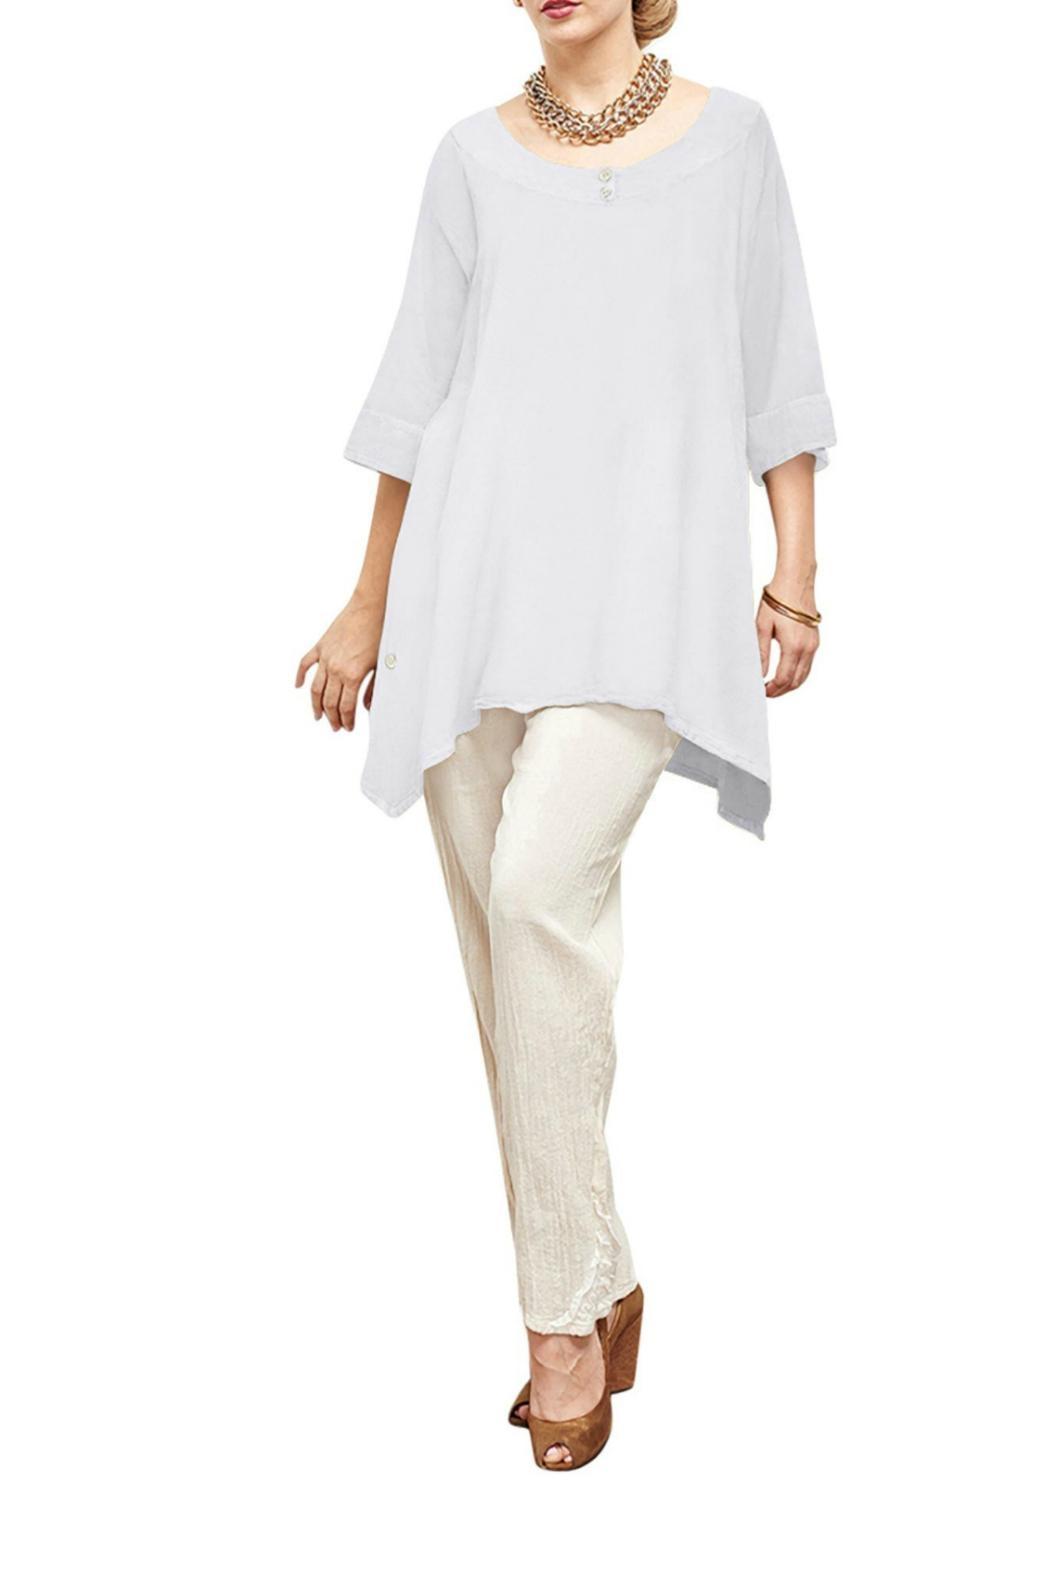 Oh My Gauze Marcy Loose Blouse - Front Cropped Image